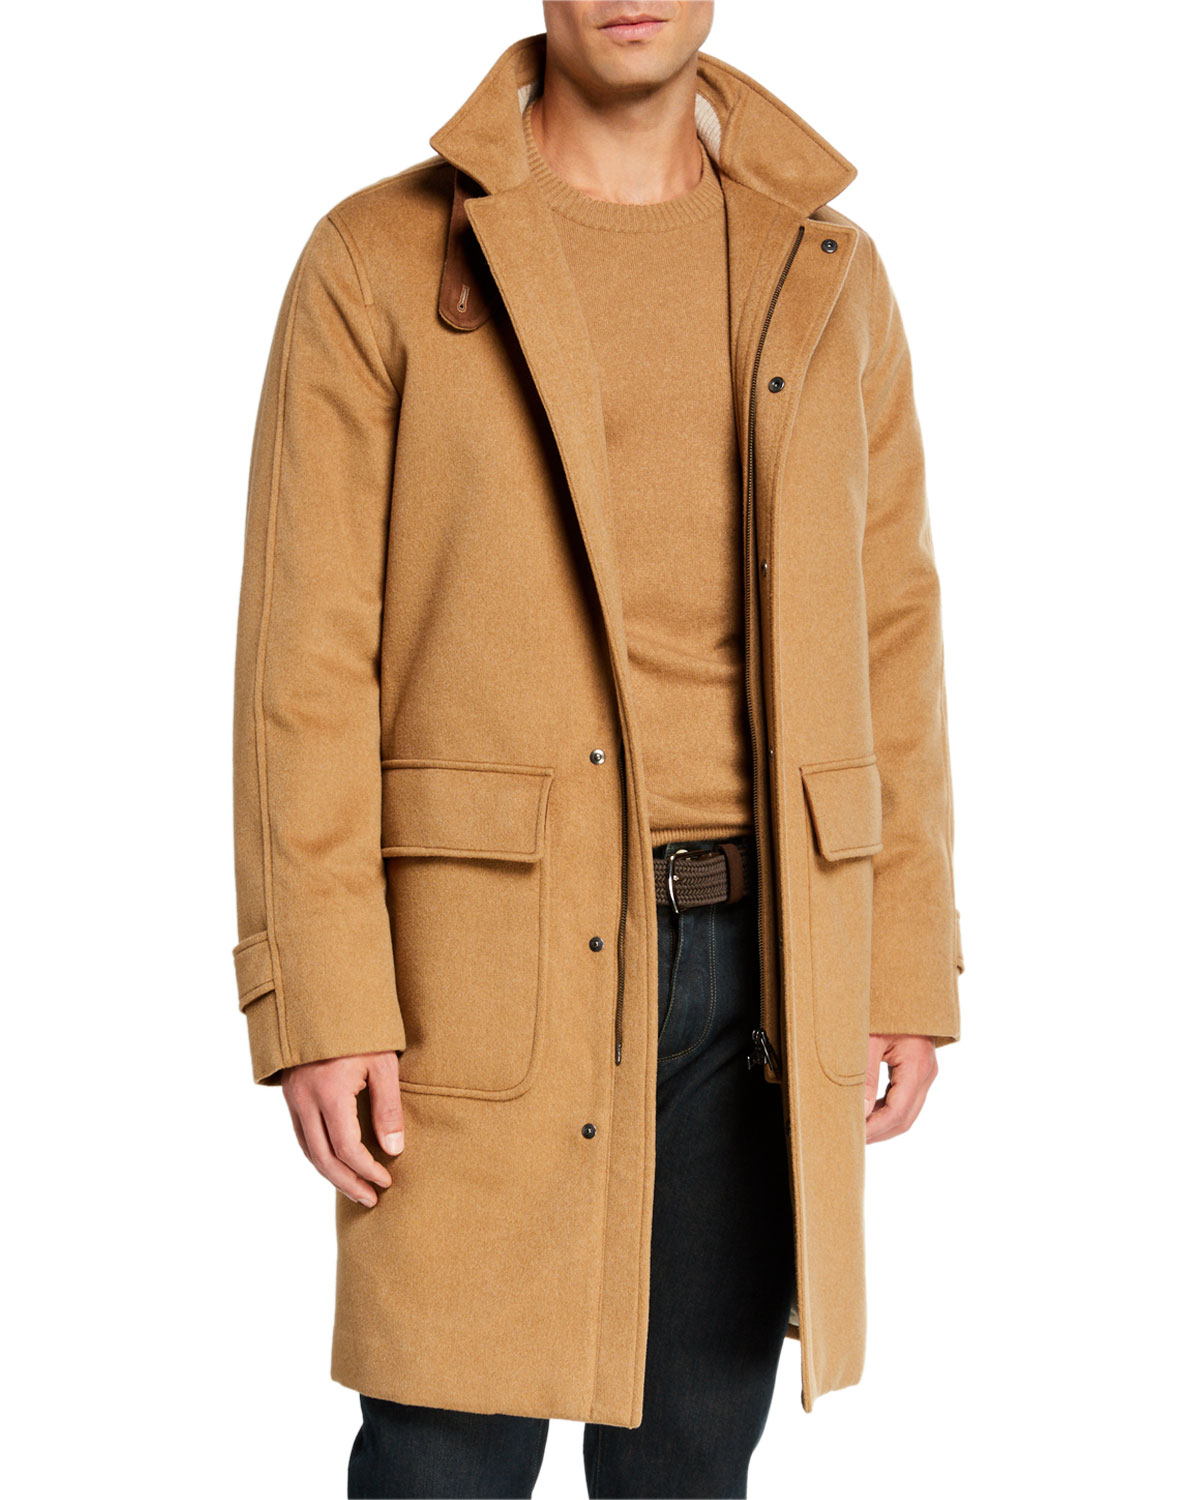 Loro Piana Men's Livingstone Cashmere Topcoat with Suede Collar